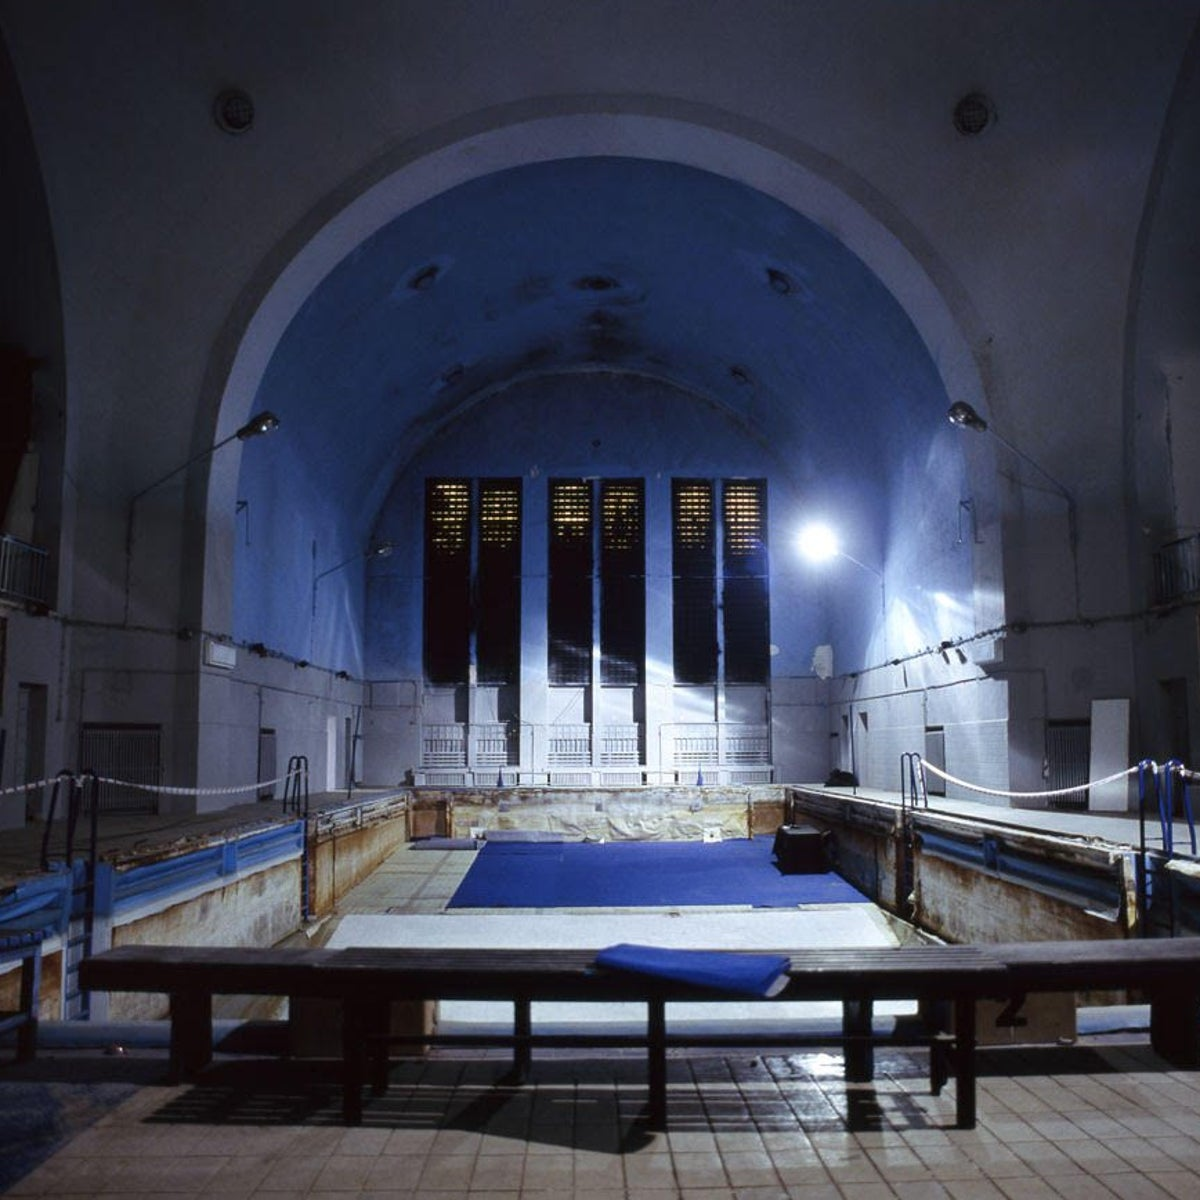 A former synagogue in Poznań, Poland, which the Nazis converted into a swimming pool.